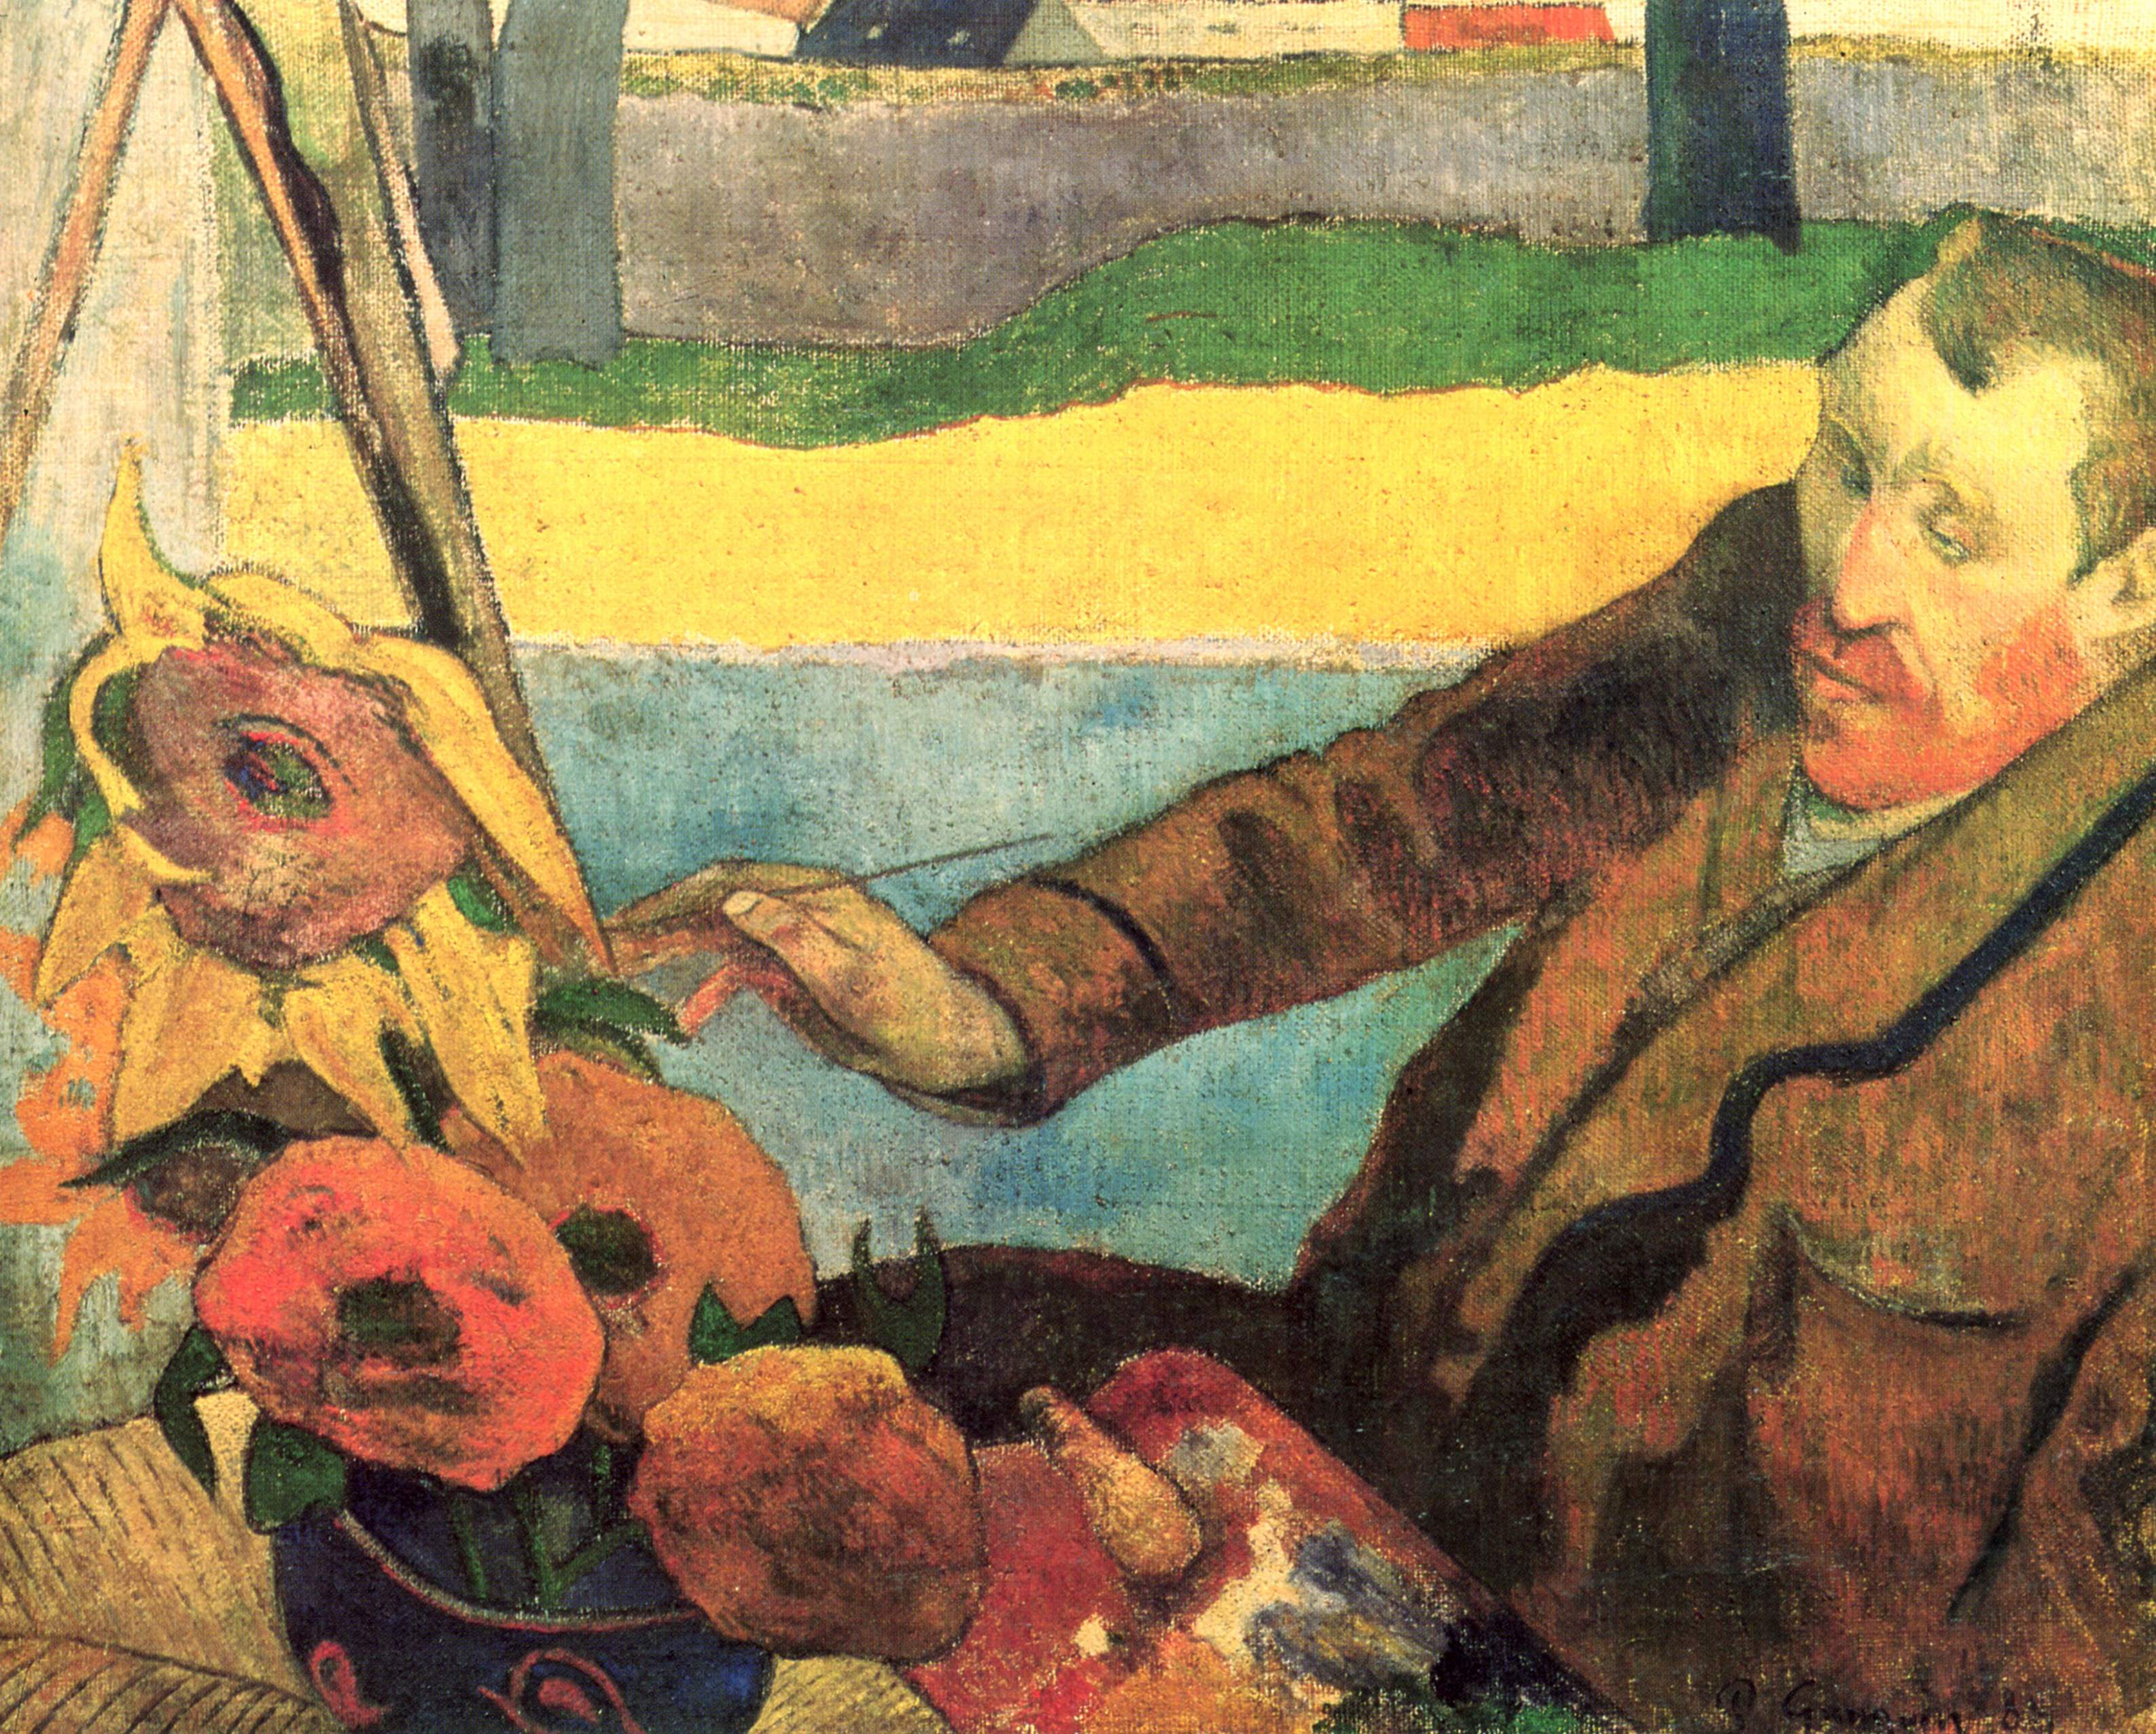 File:Paul Gauguin 104.jpg - Wikimedia Commons